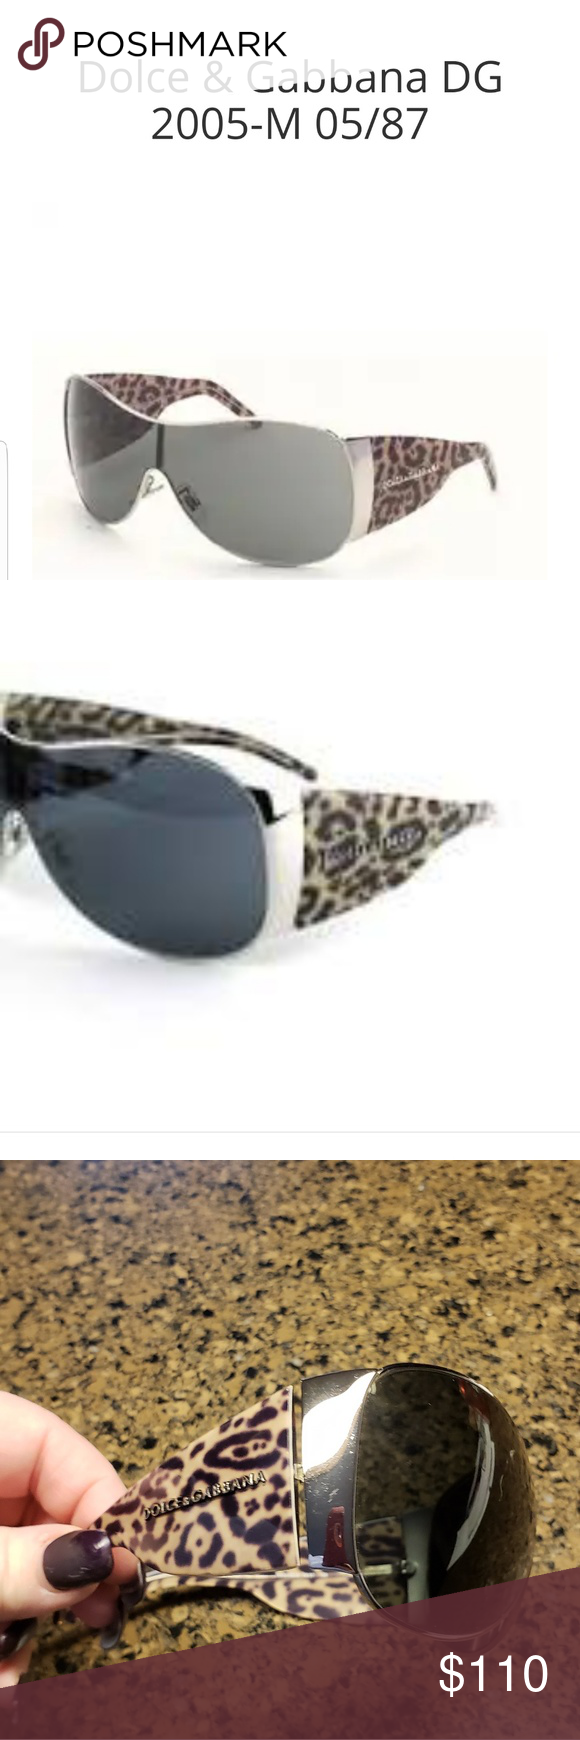 1a3638018464 Purchased from The Real Real. Fun and high fashion. Non smoking home. No  case. Dolce   Gabbana Accessories Sunglasses